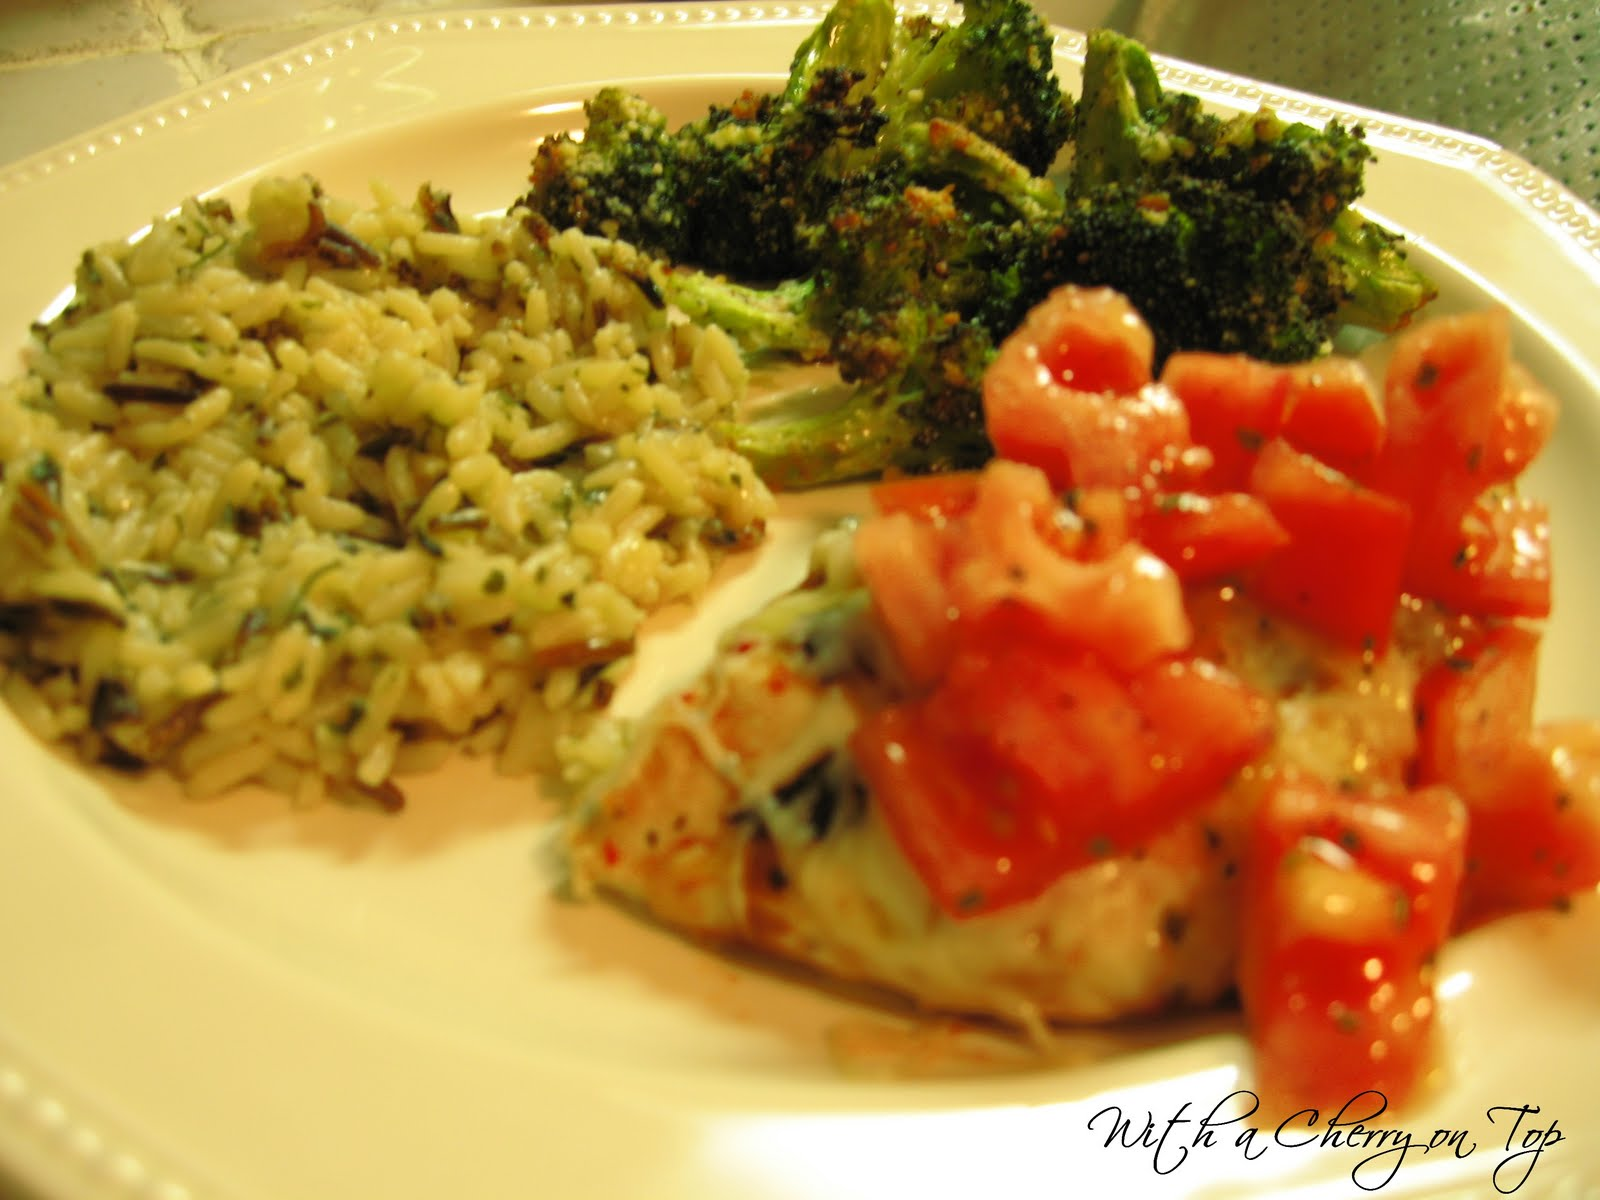 Caprese Chicken & Roasted Parmesan Broccoli